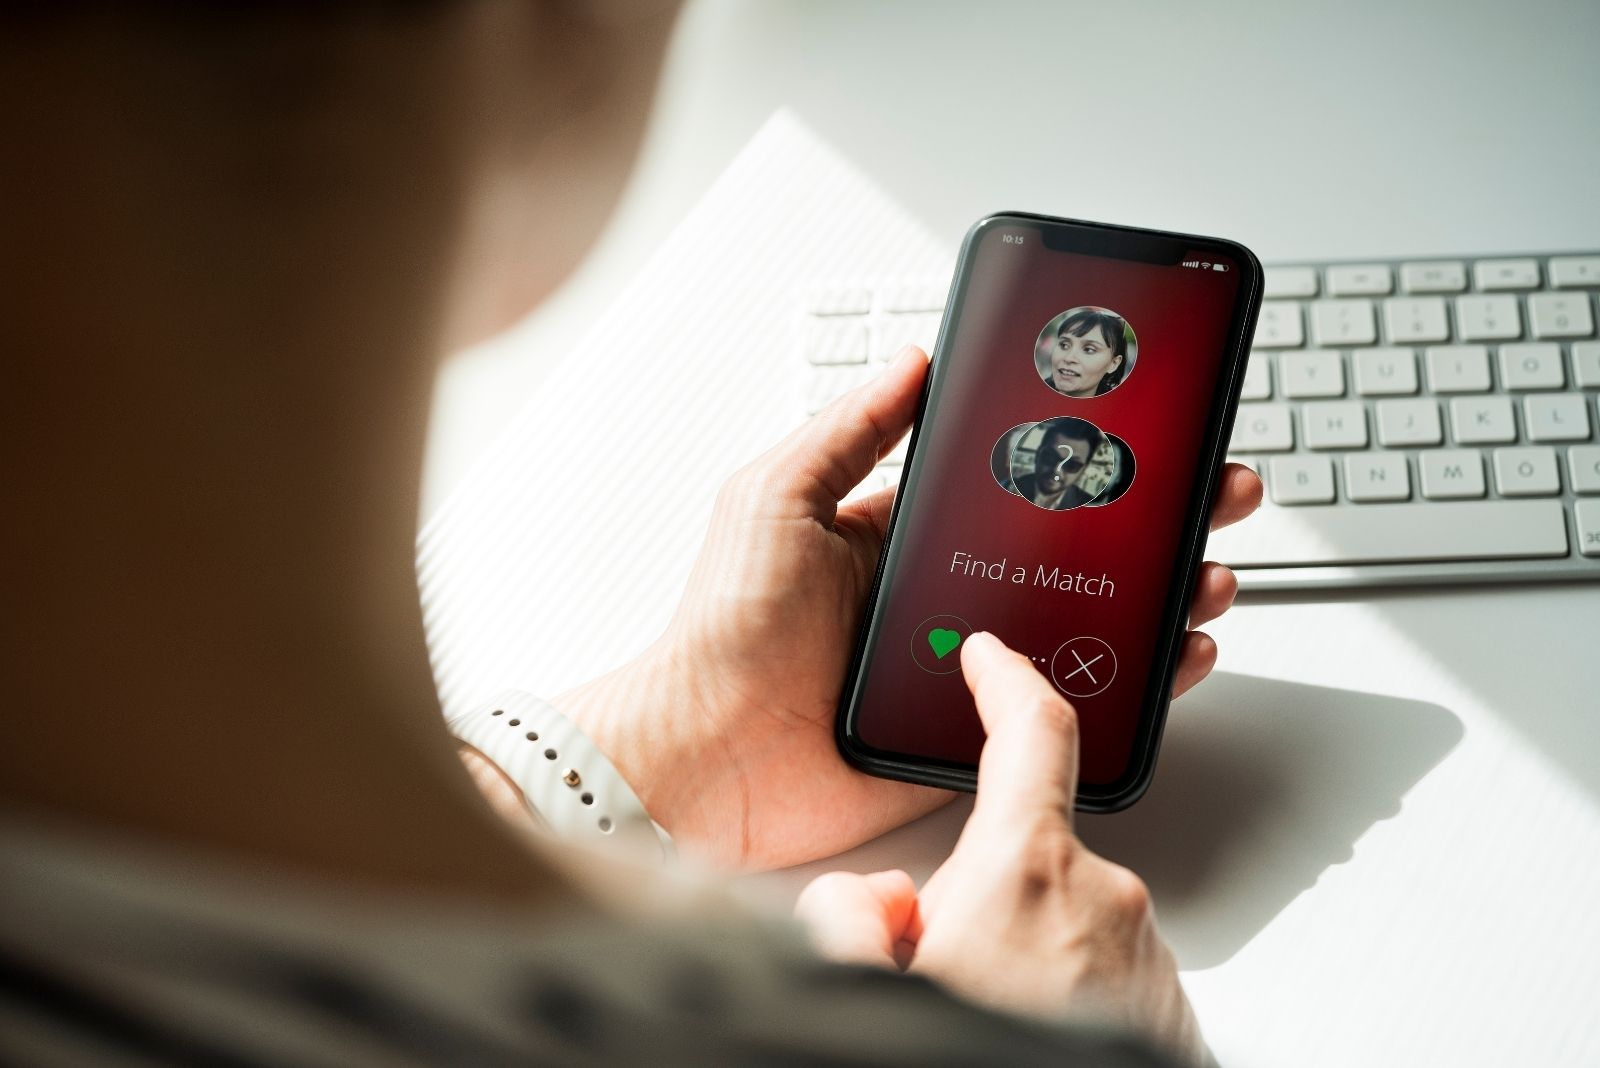 online dating application on the smarphone of the woman